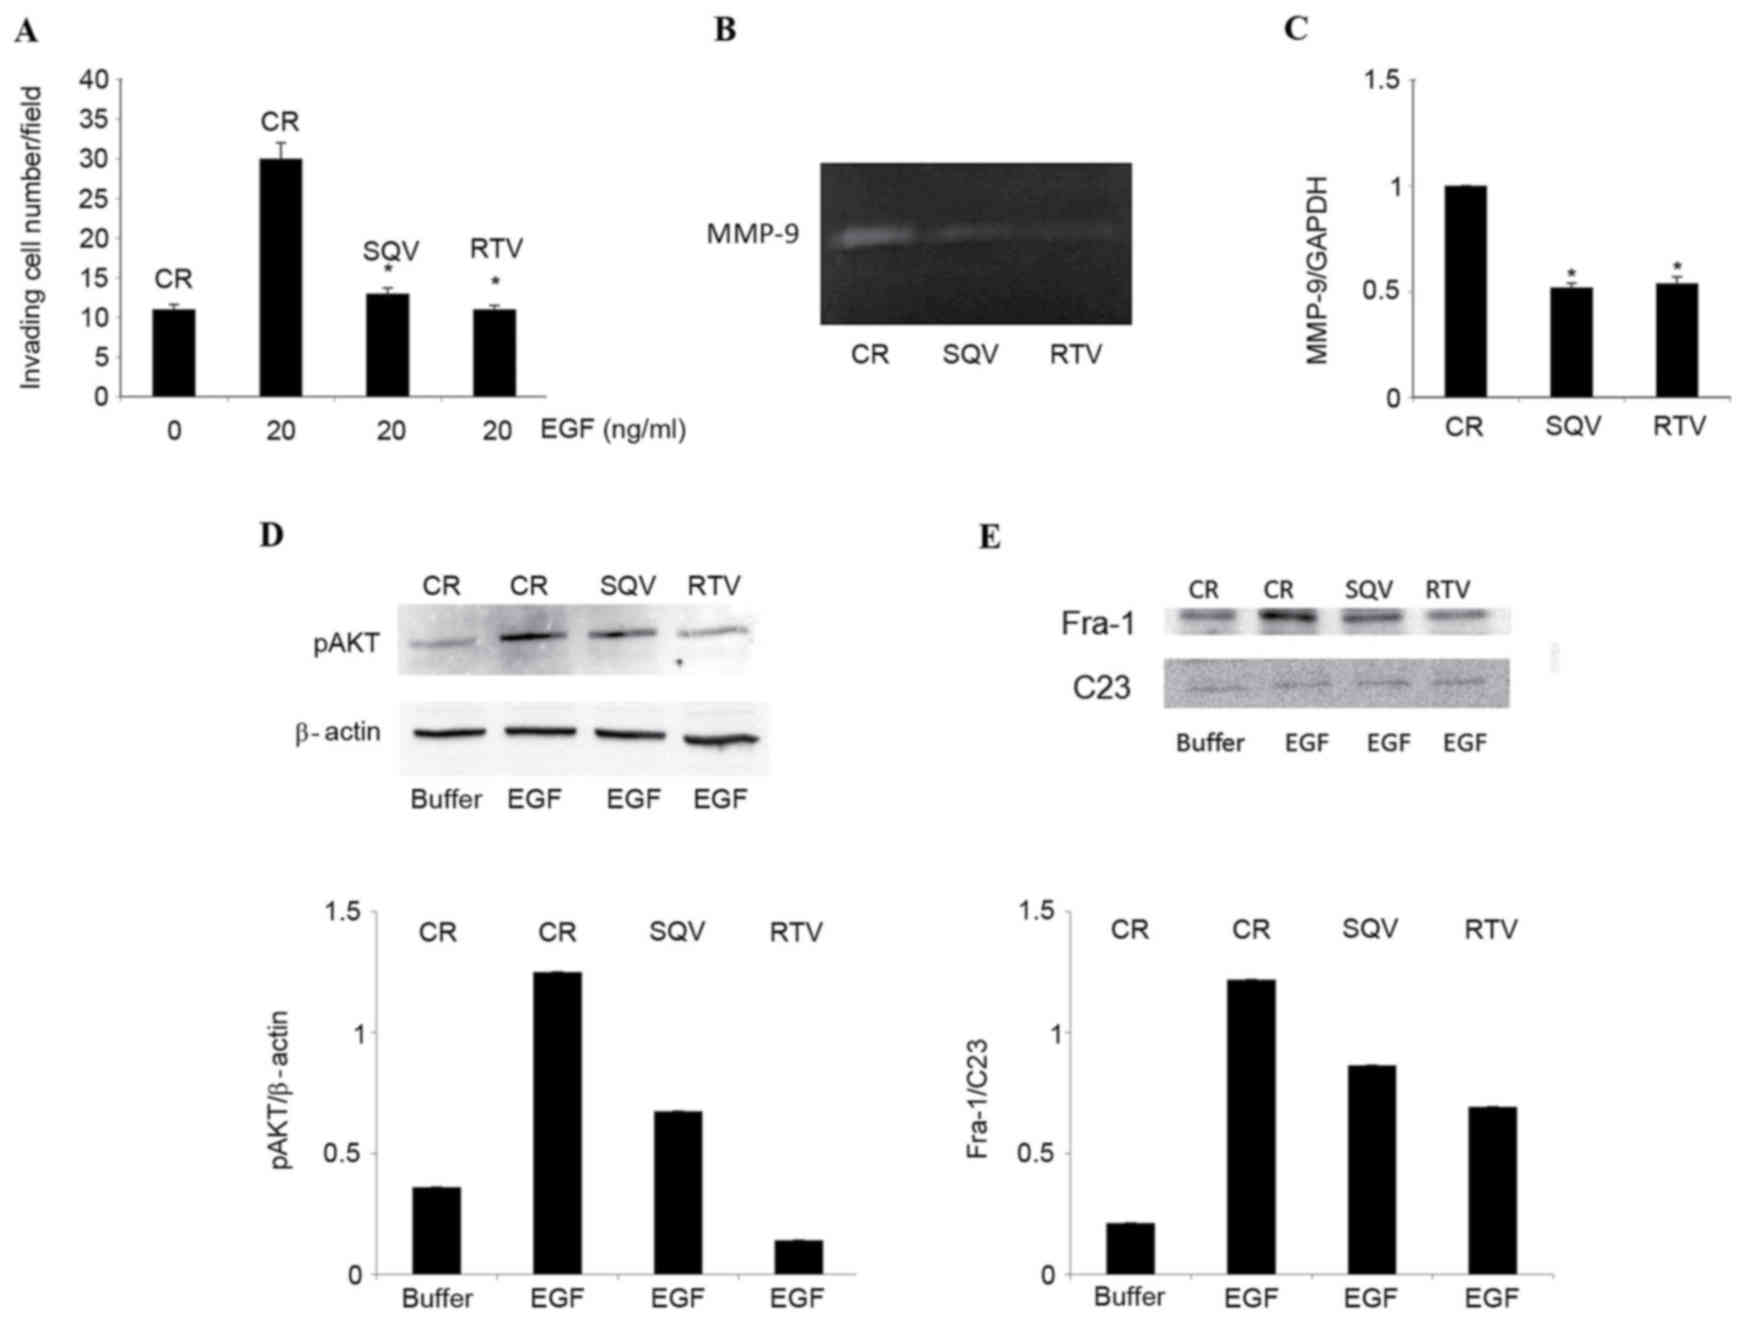 hight resolution of w12 cells were cultured for 96 h in the presence of 10 m sqv or rtv or in their absence control a cells were stimulated to invade a reconstituted